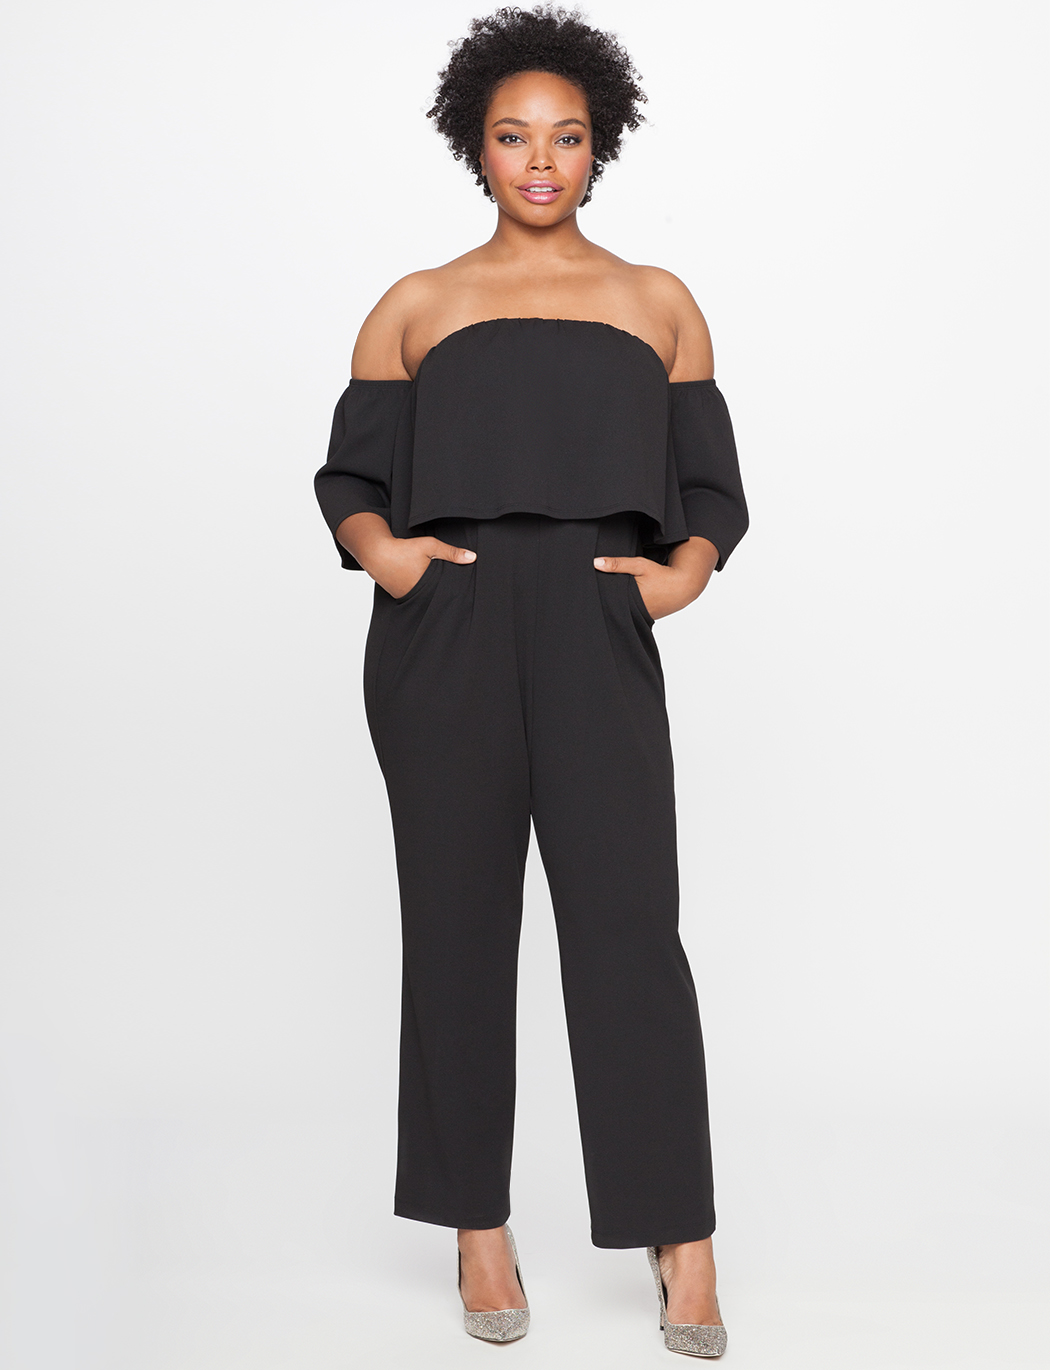 ELOQUII Black Off the Shoulder Ruffle Jumpsuit